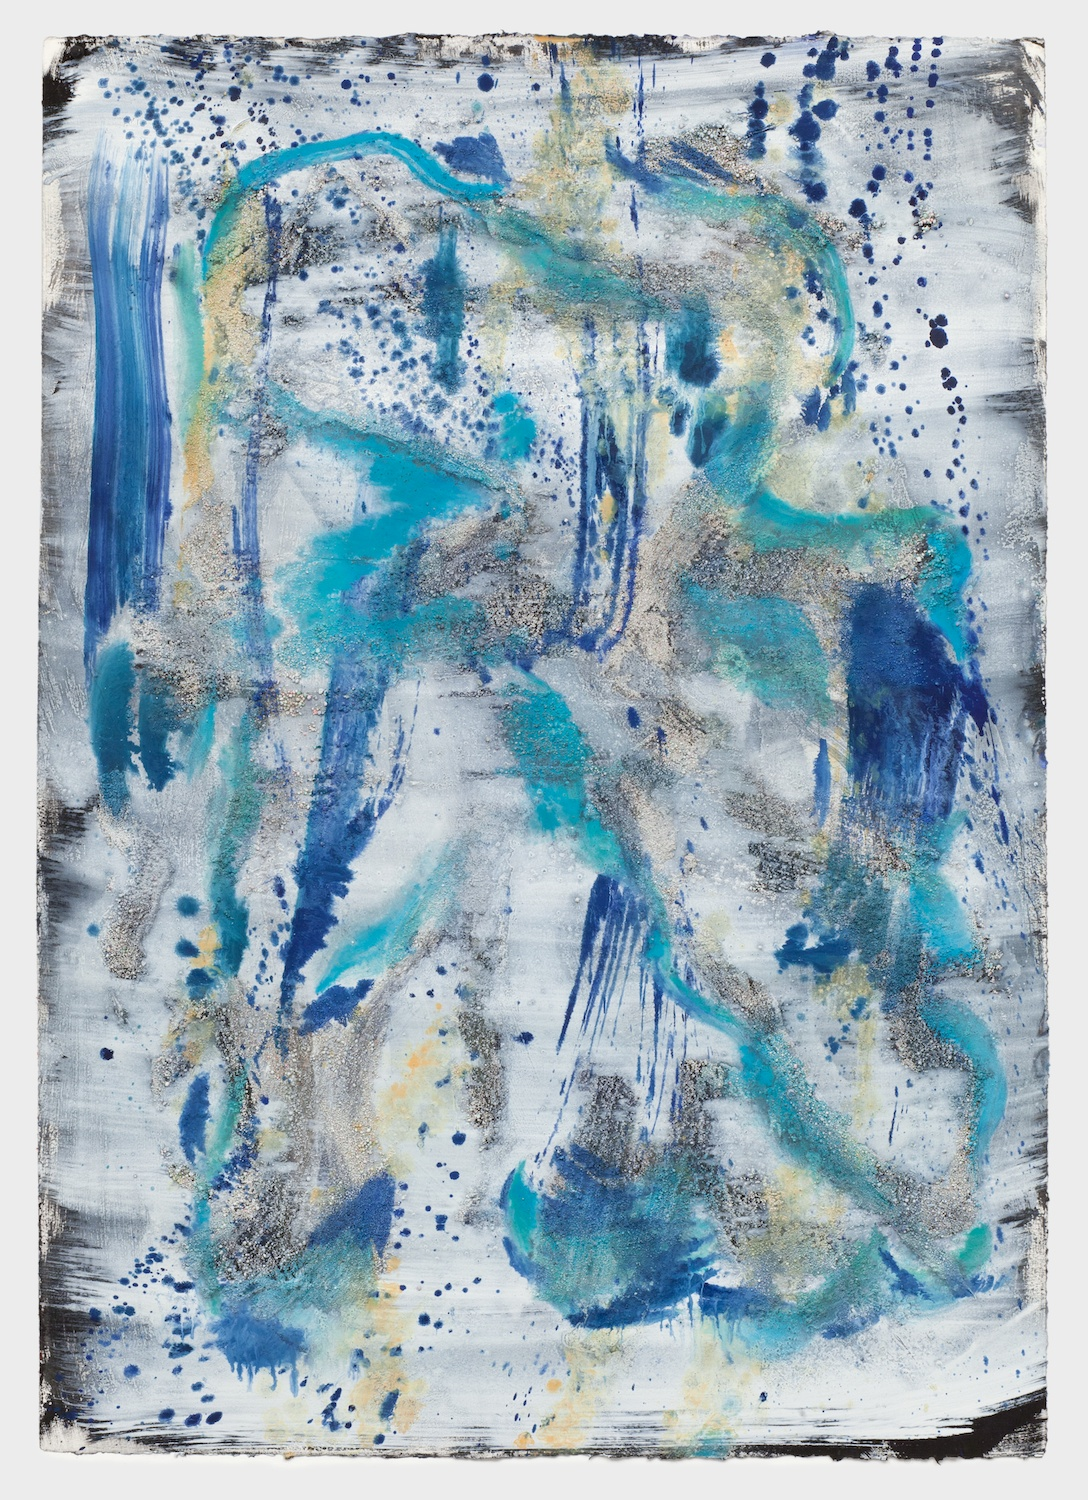 Jon Pestoni  Untitled  2013 Oil and mixed media on paper 40h x 30w in JP141